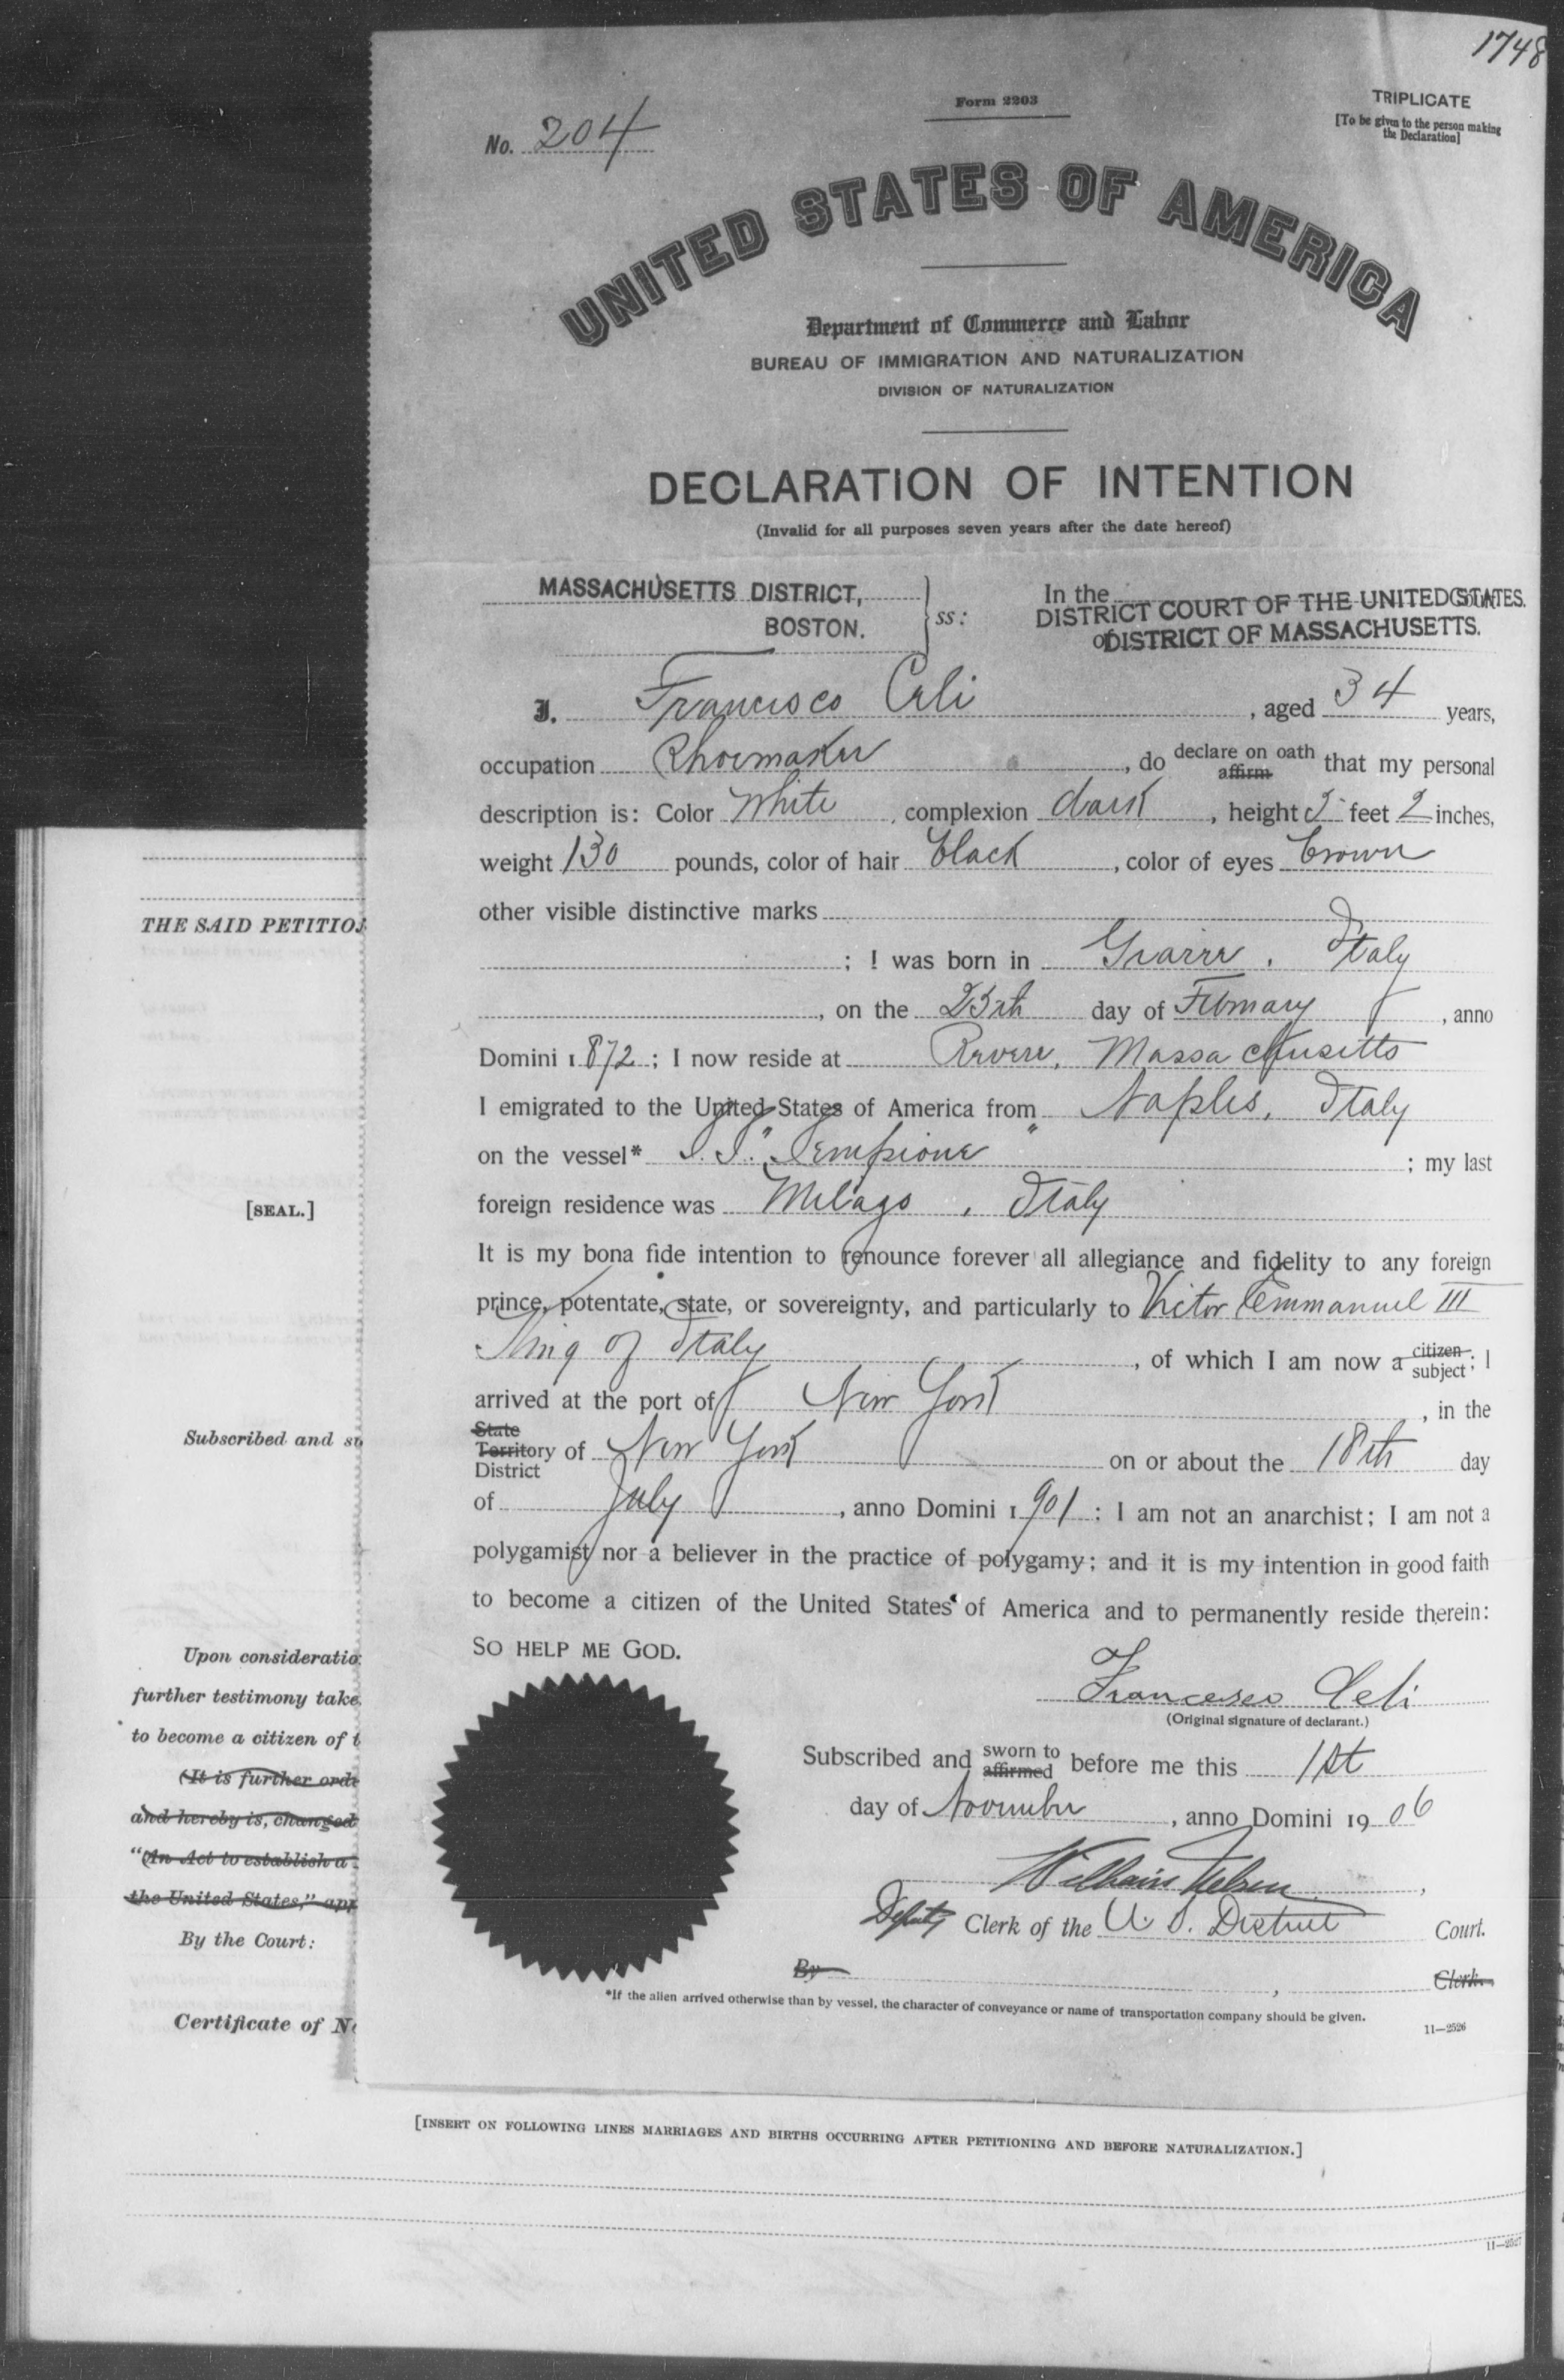 Petition for Naturalization of Francisco Celi